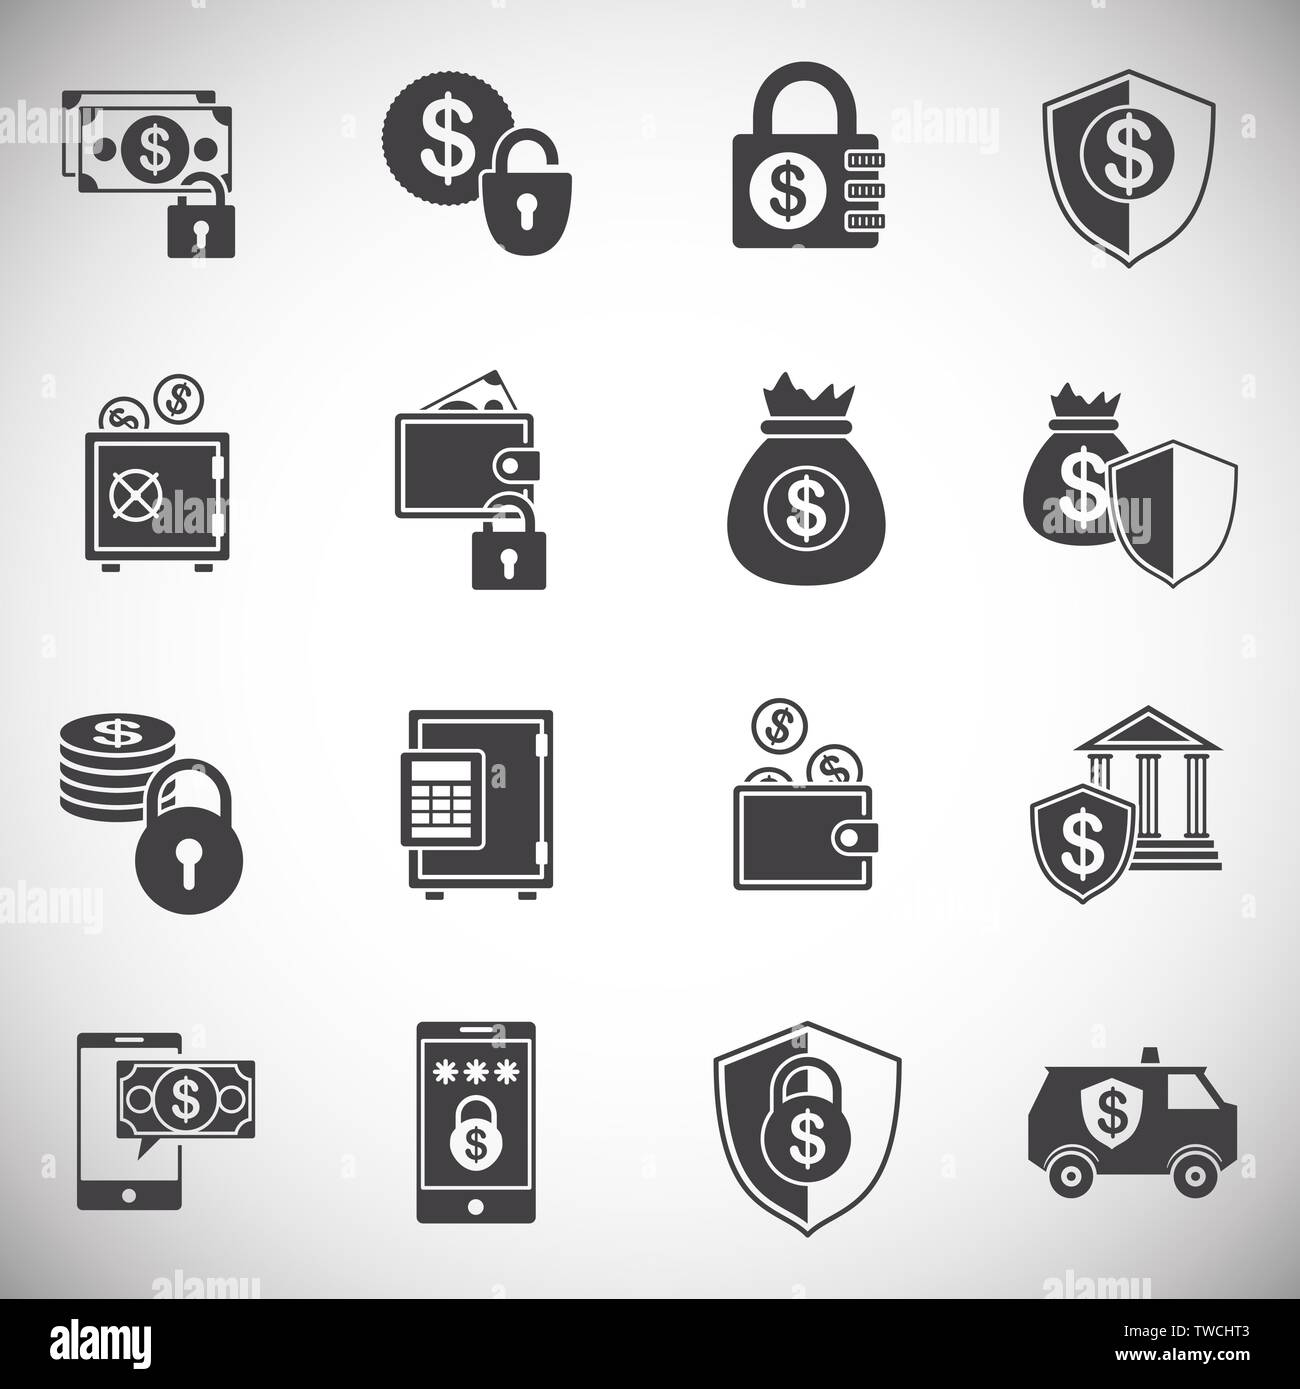 Money security related icons set on background for graphic and web design. Simple illustration. Internet concept symbol for website button or mobile - Stock Image